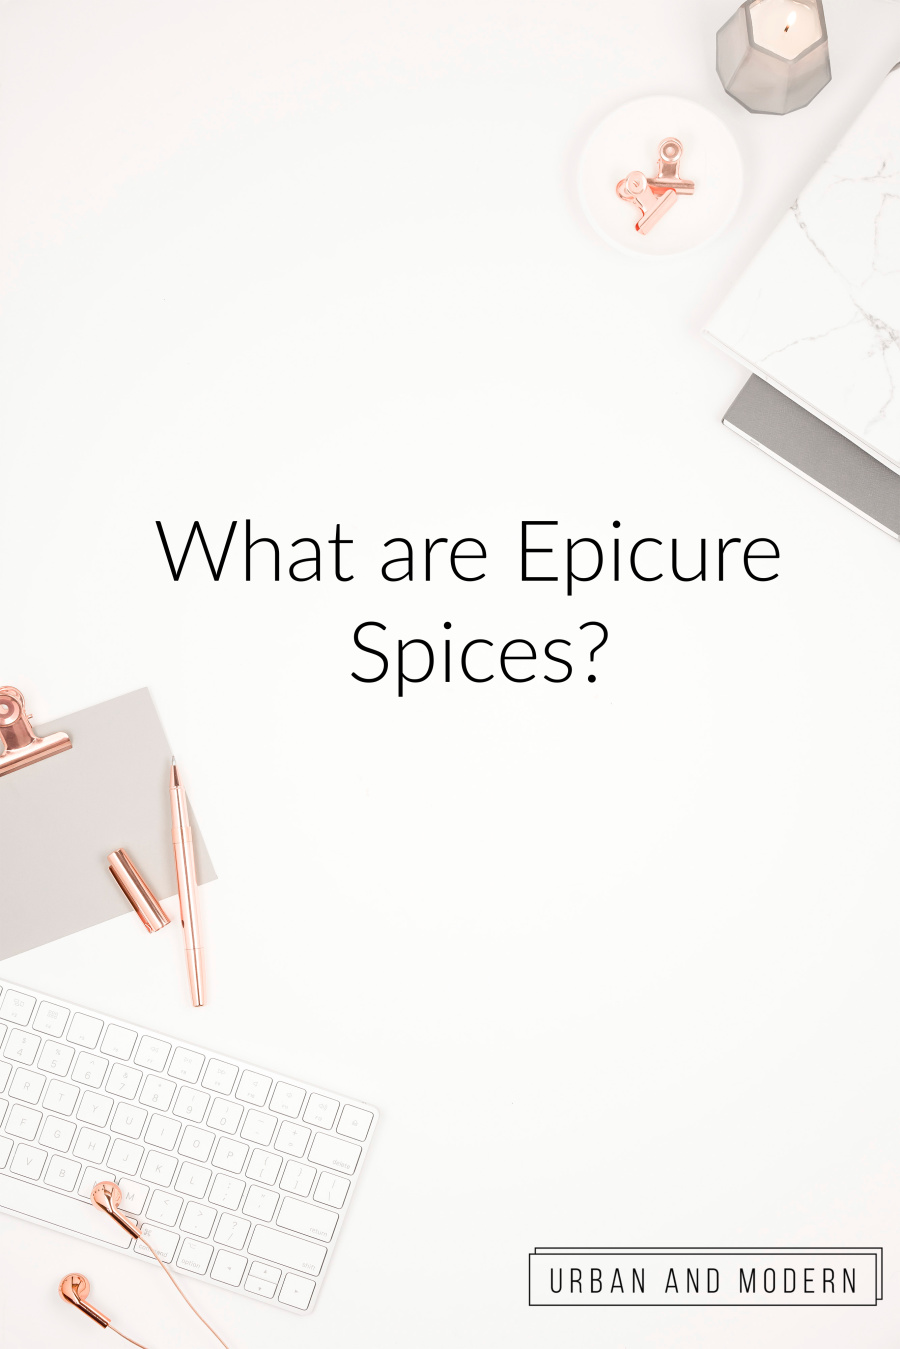 What are Epicure spices?